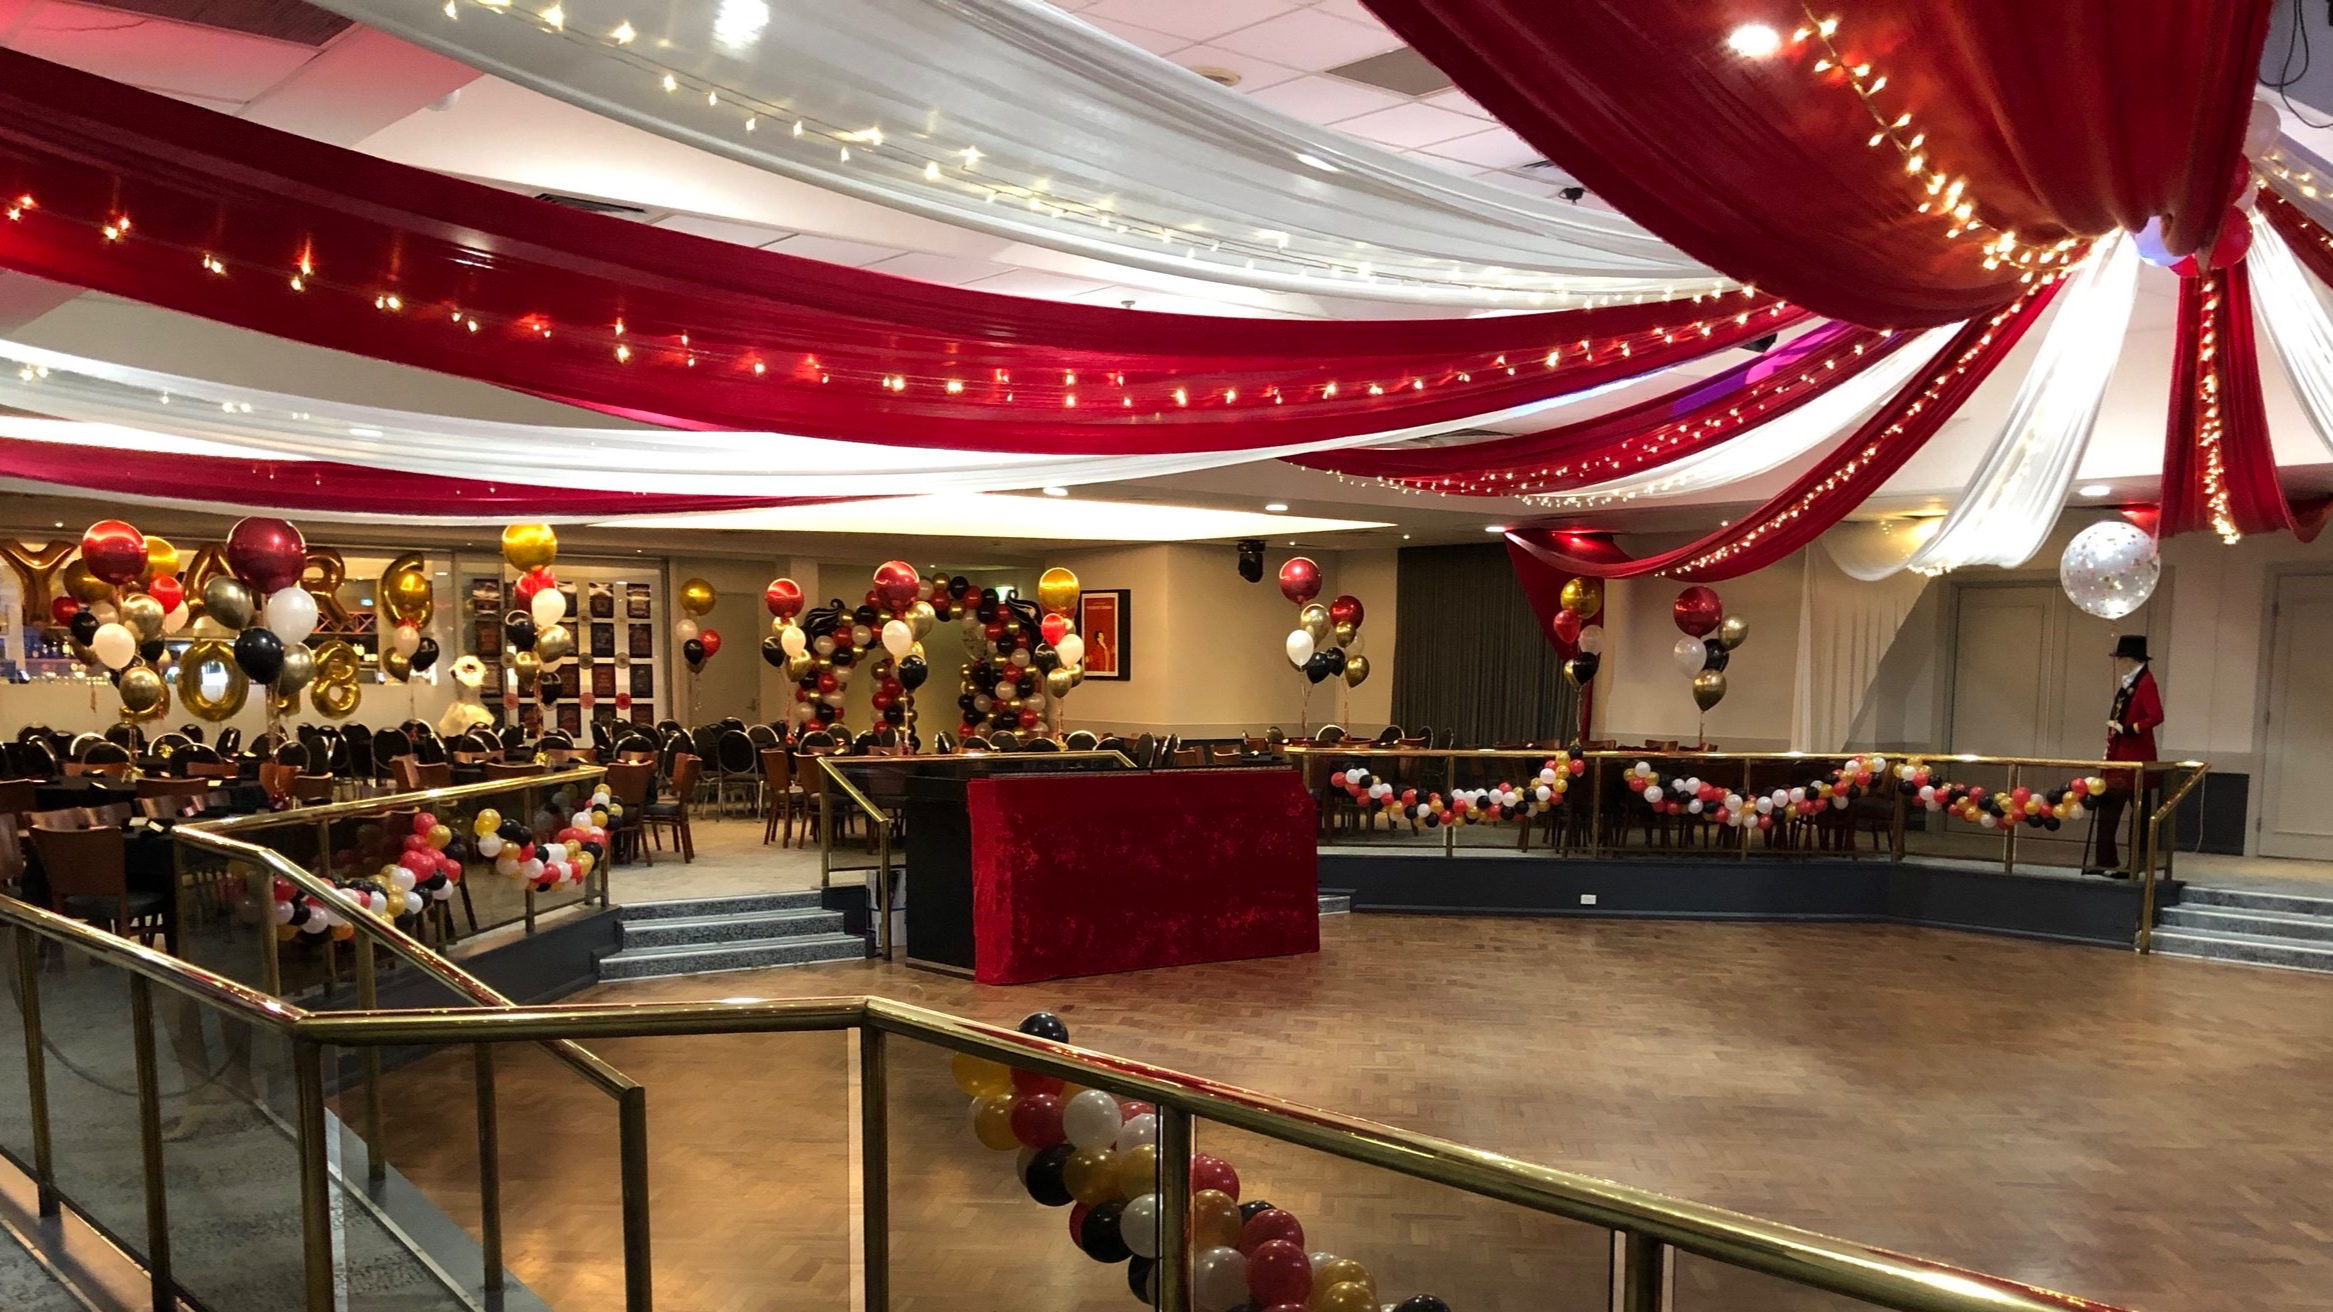 Red & white circus themed ceiling draping by Fairytale Events - Pittwater RSL